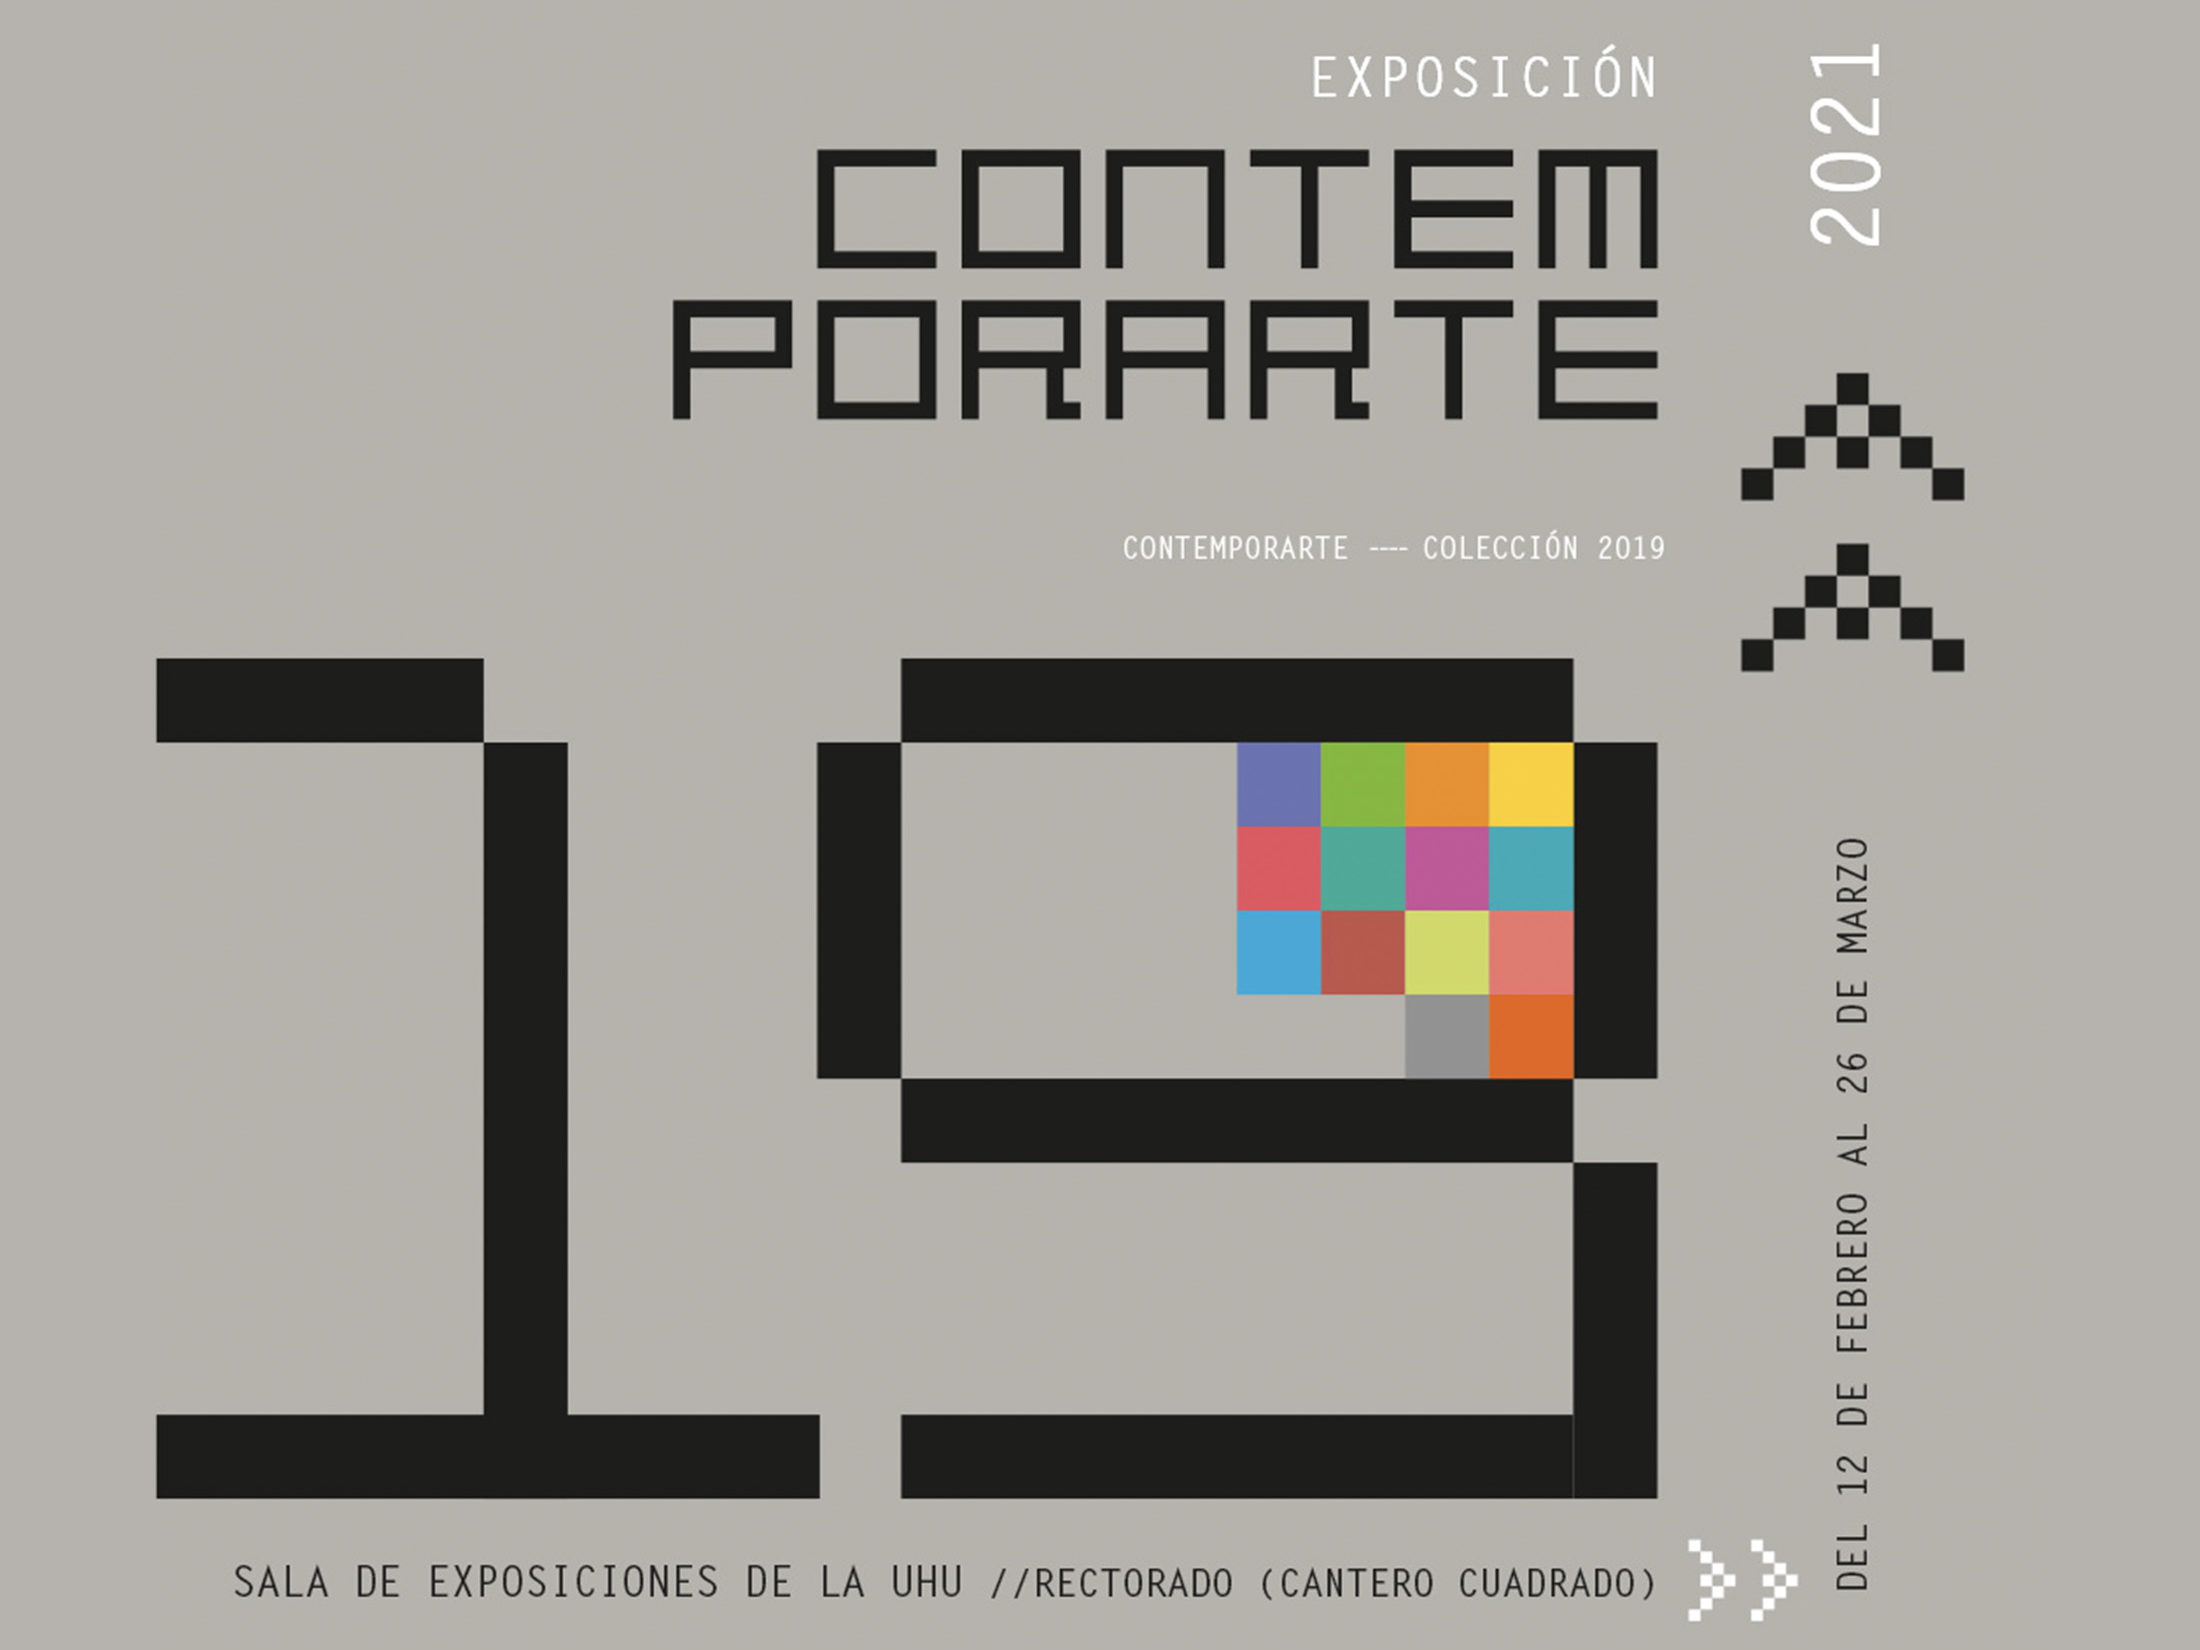 Expo contemporarte